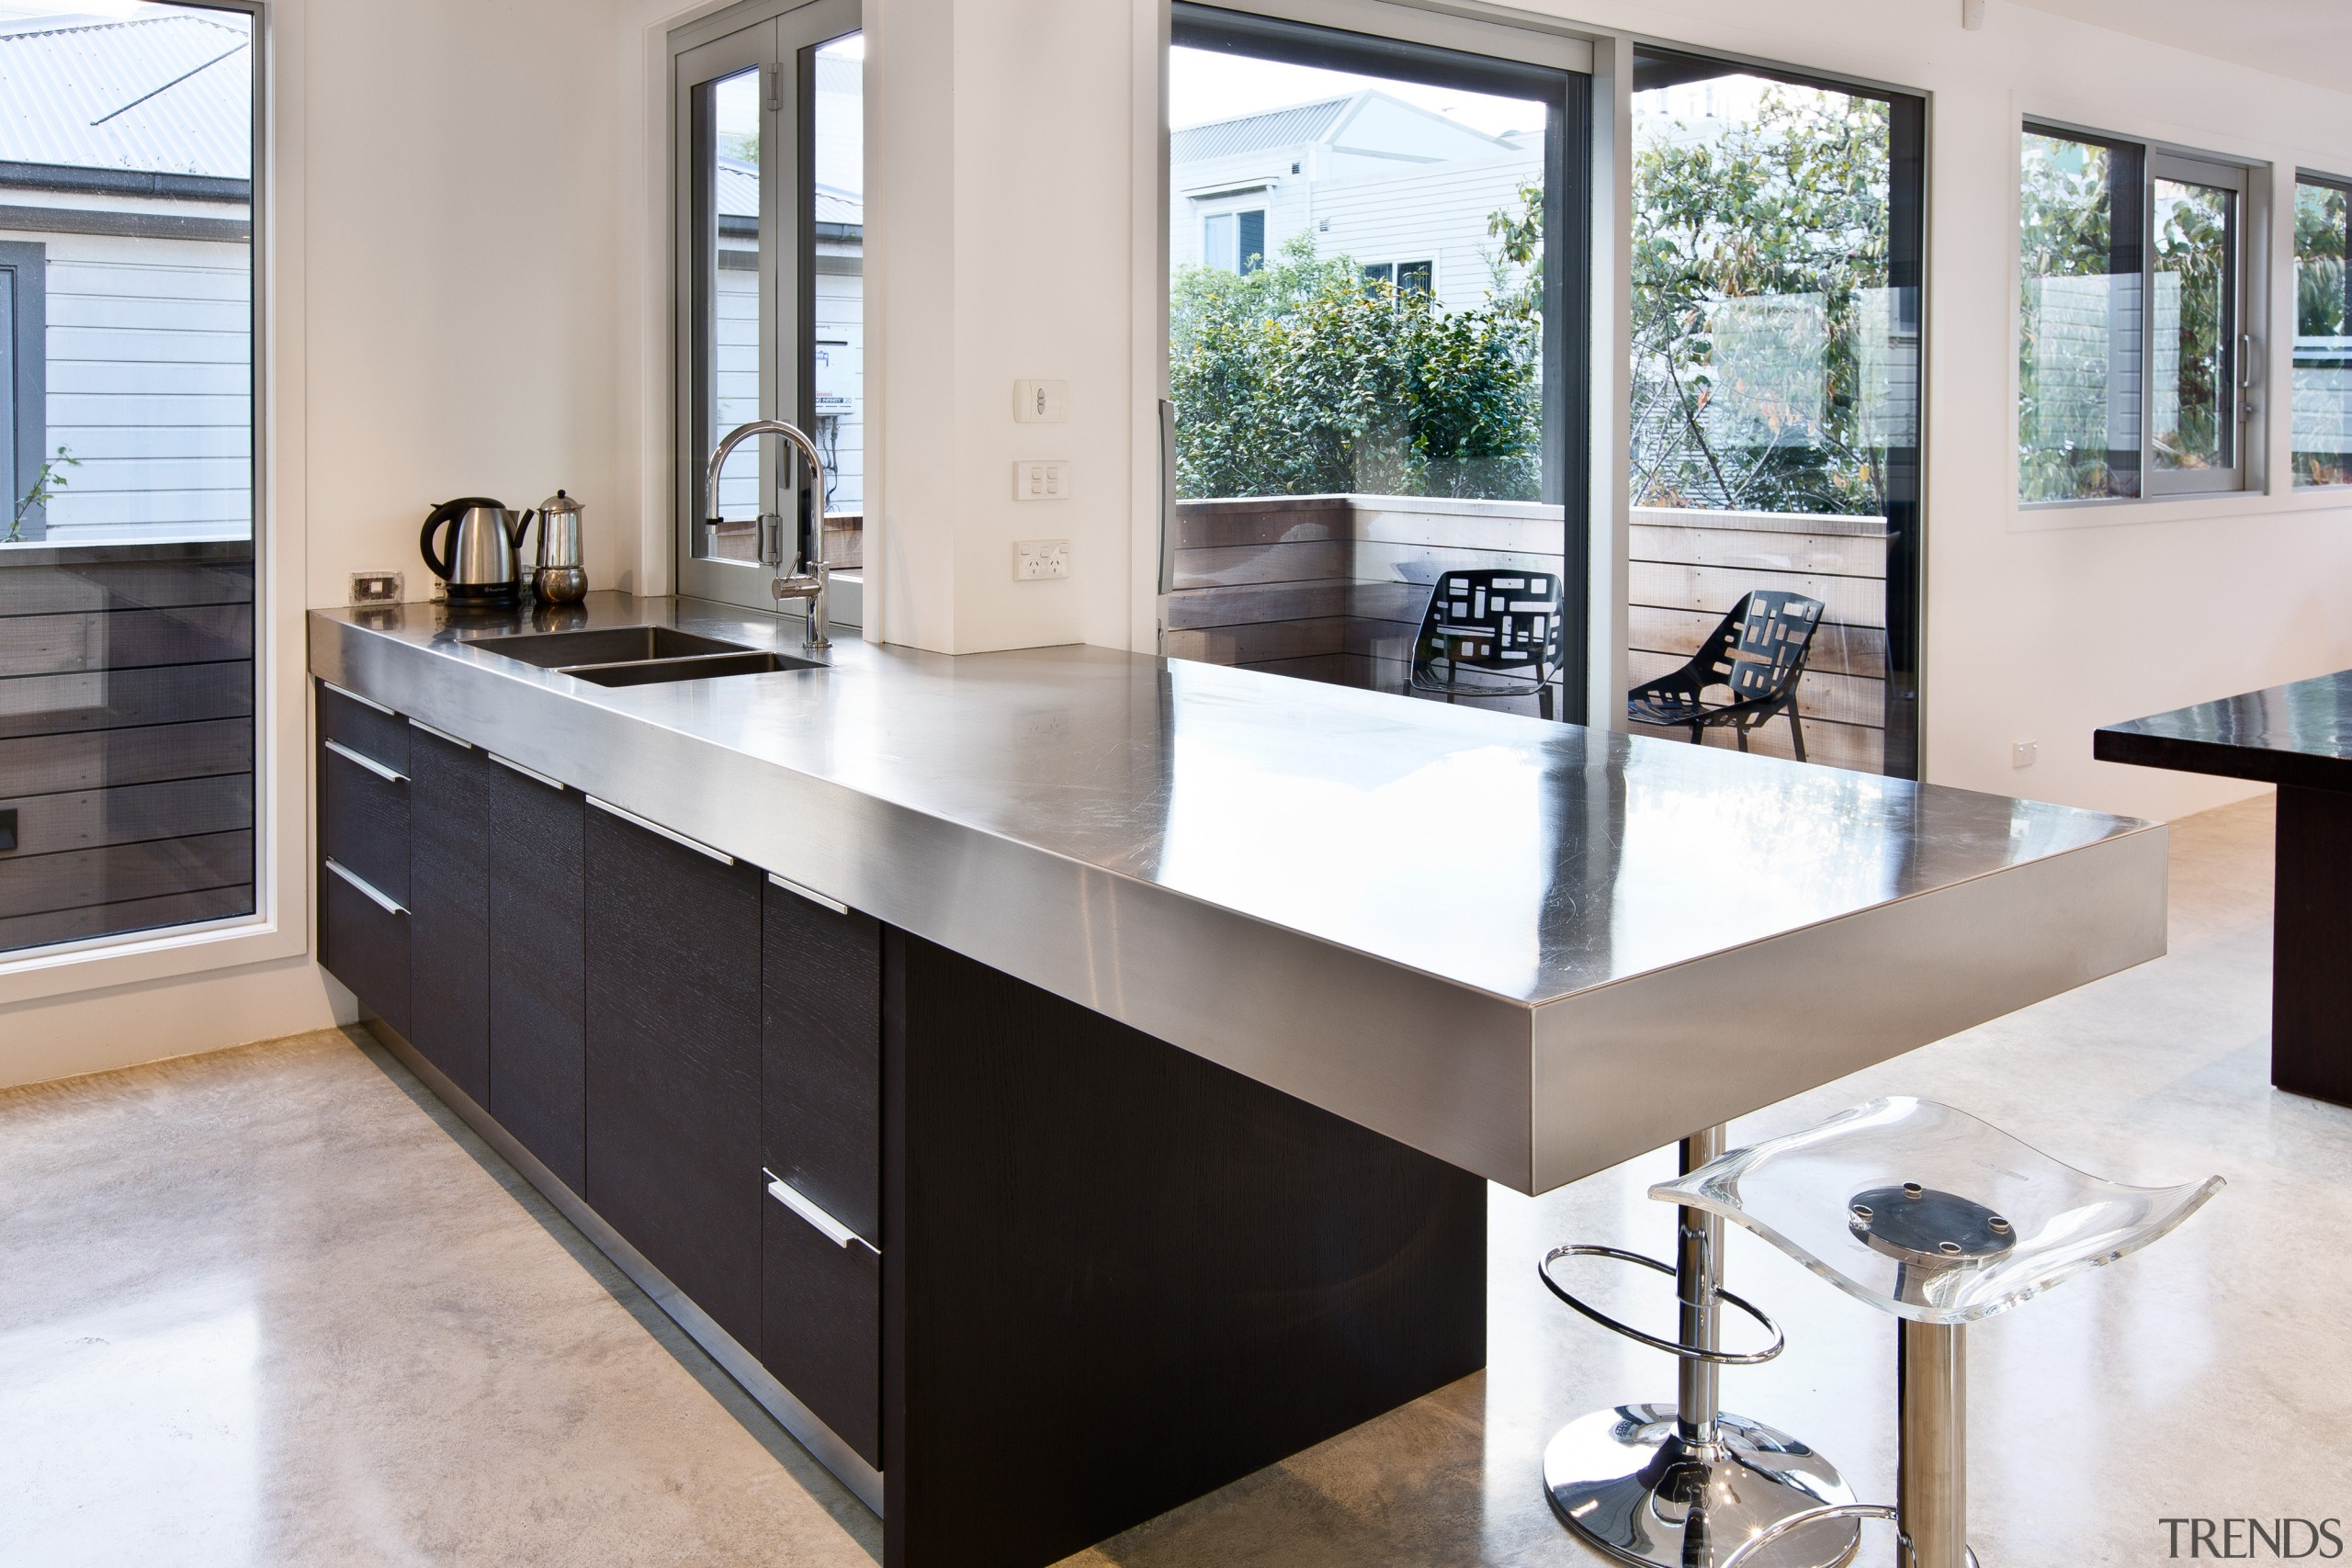 Internal steel support was required to achieve the cabinetry, countertop, cuisine classique, interior design, kitchen, sink, gray